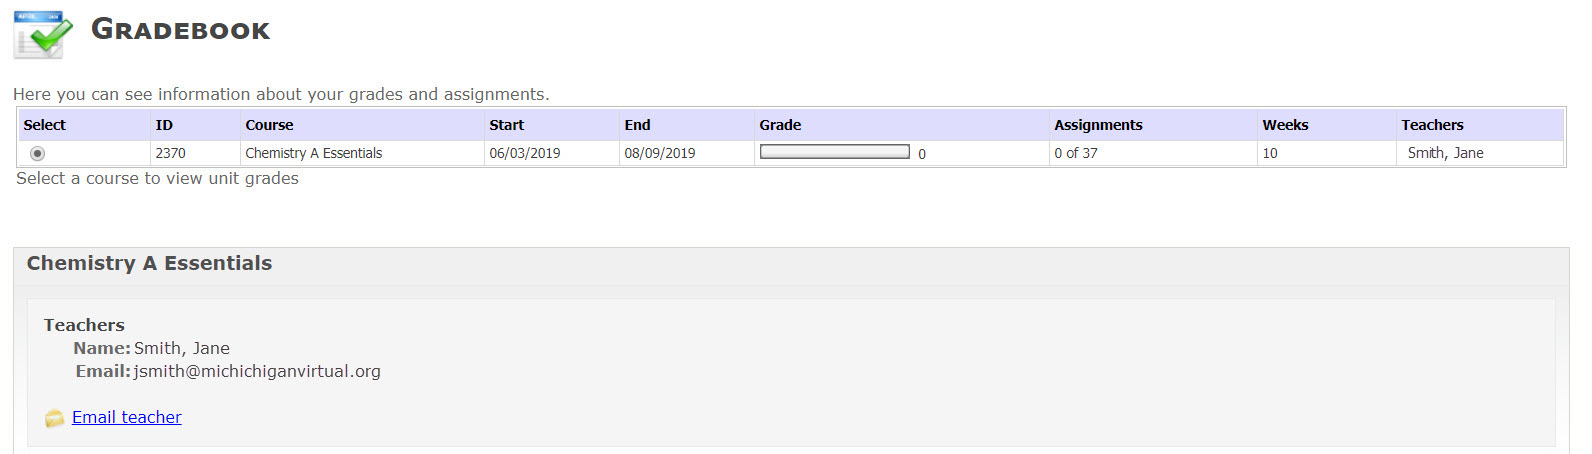 The Gradebook is shown with the selected courses teacher name and email shown.